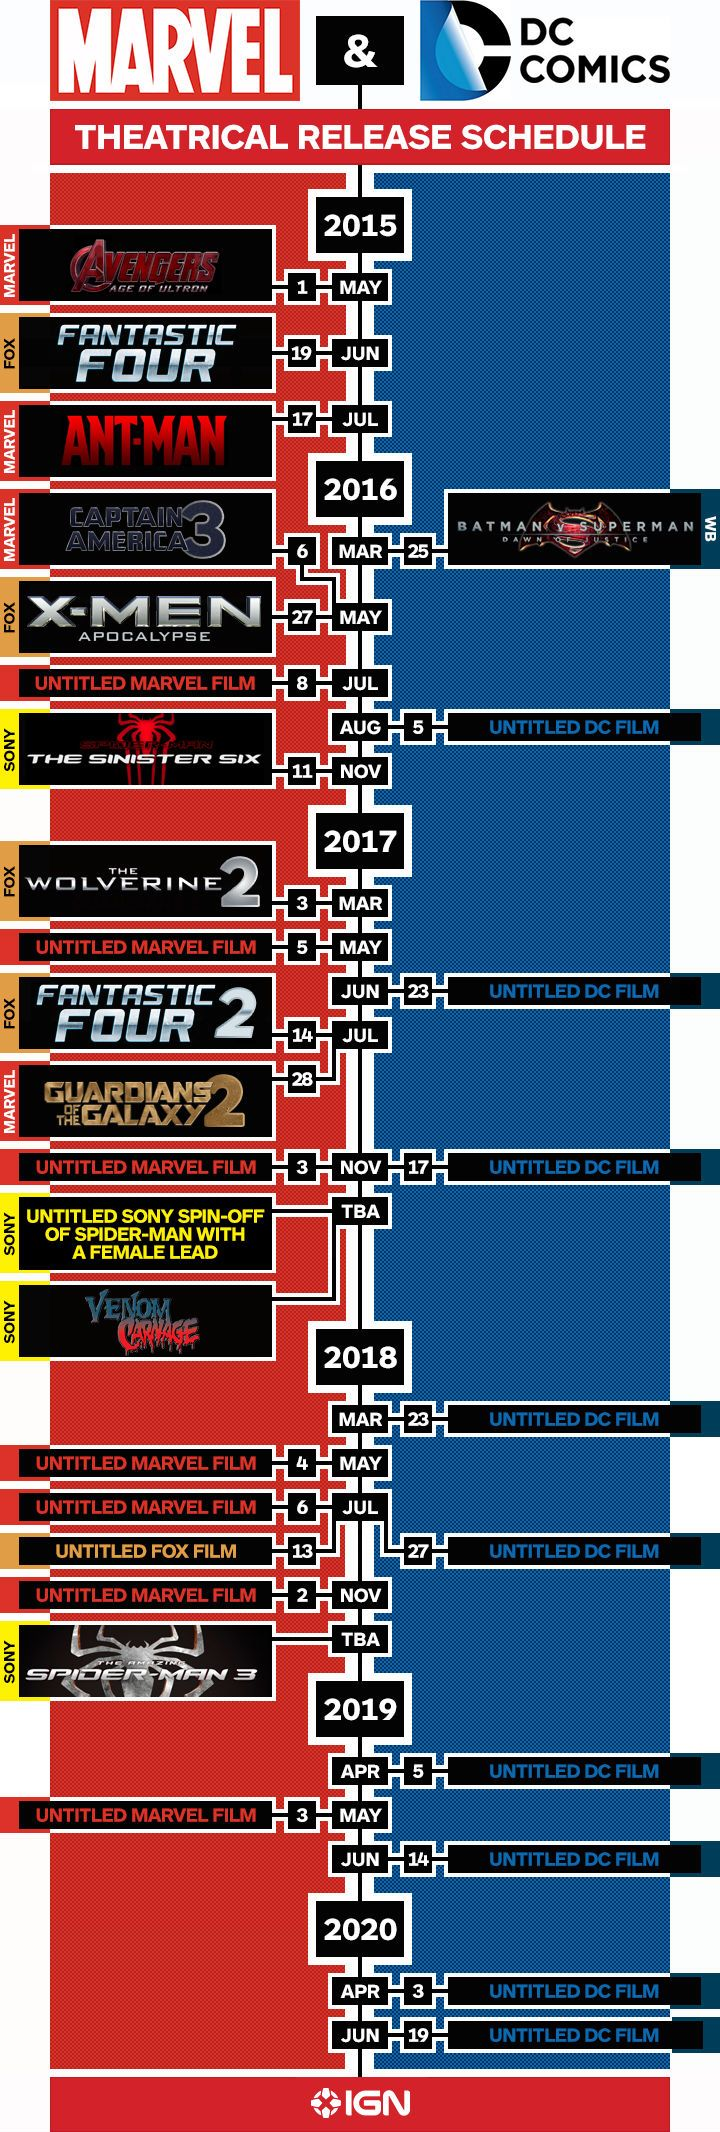 Upcoming Marvel and DC proyects.